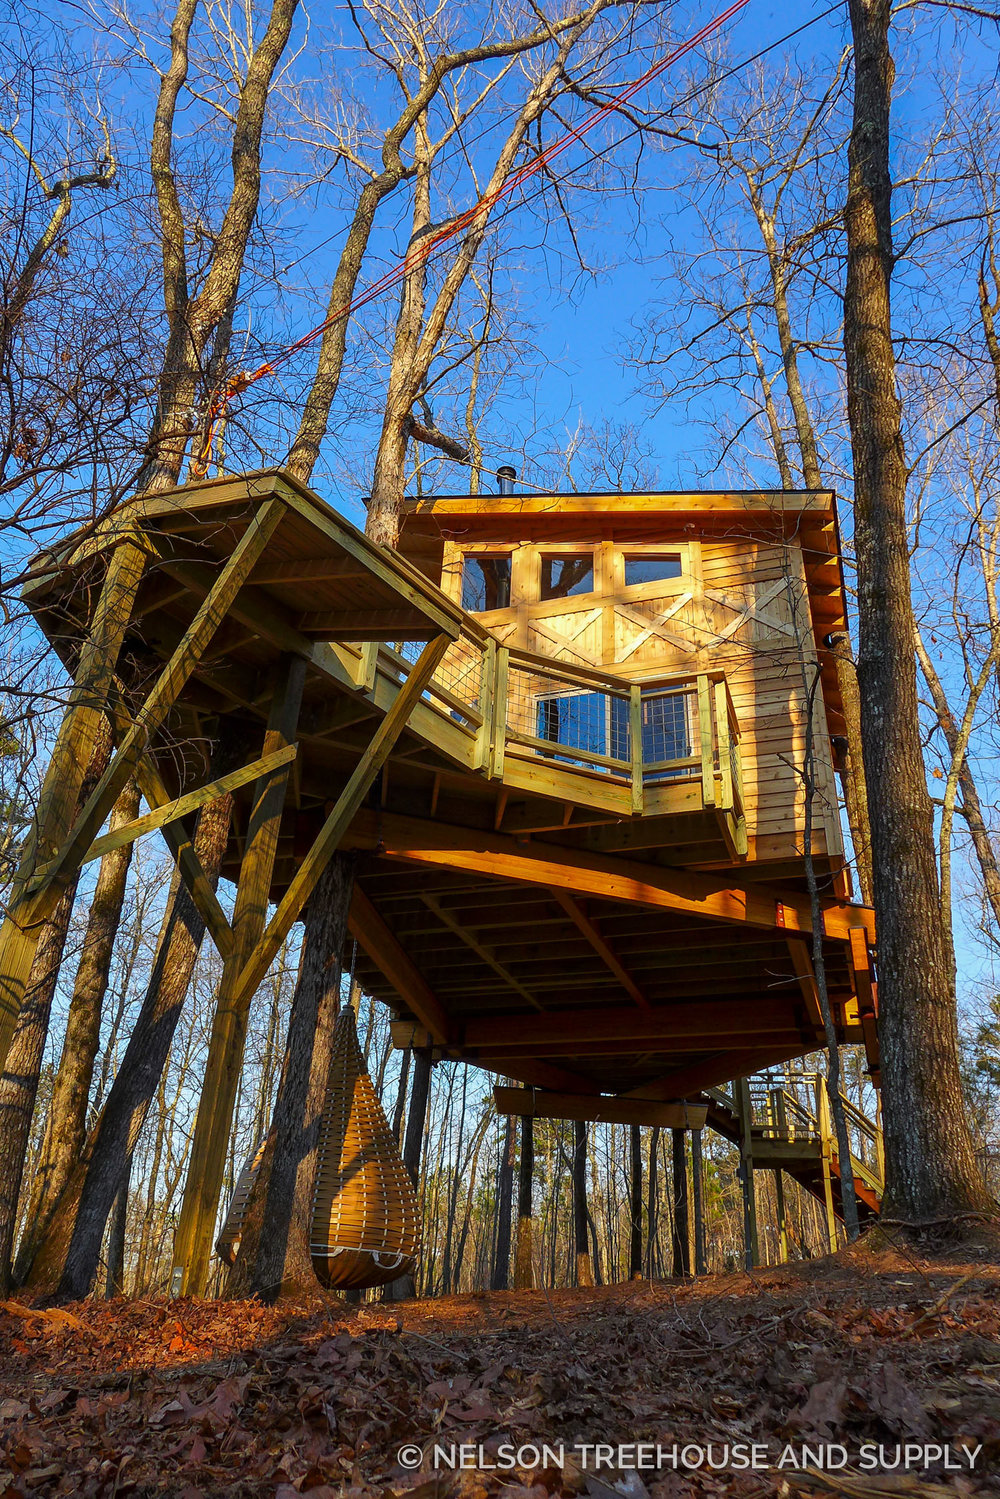 A wooden treehouse that blends in with the trees